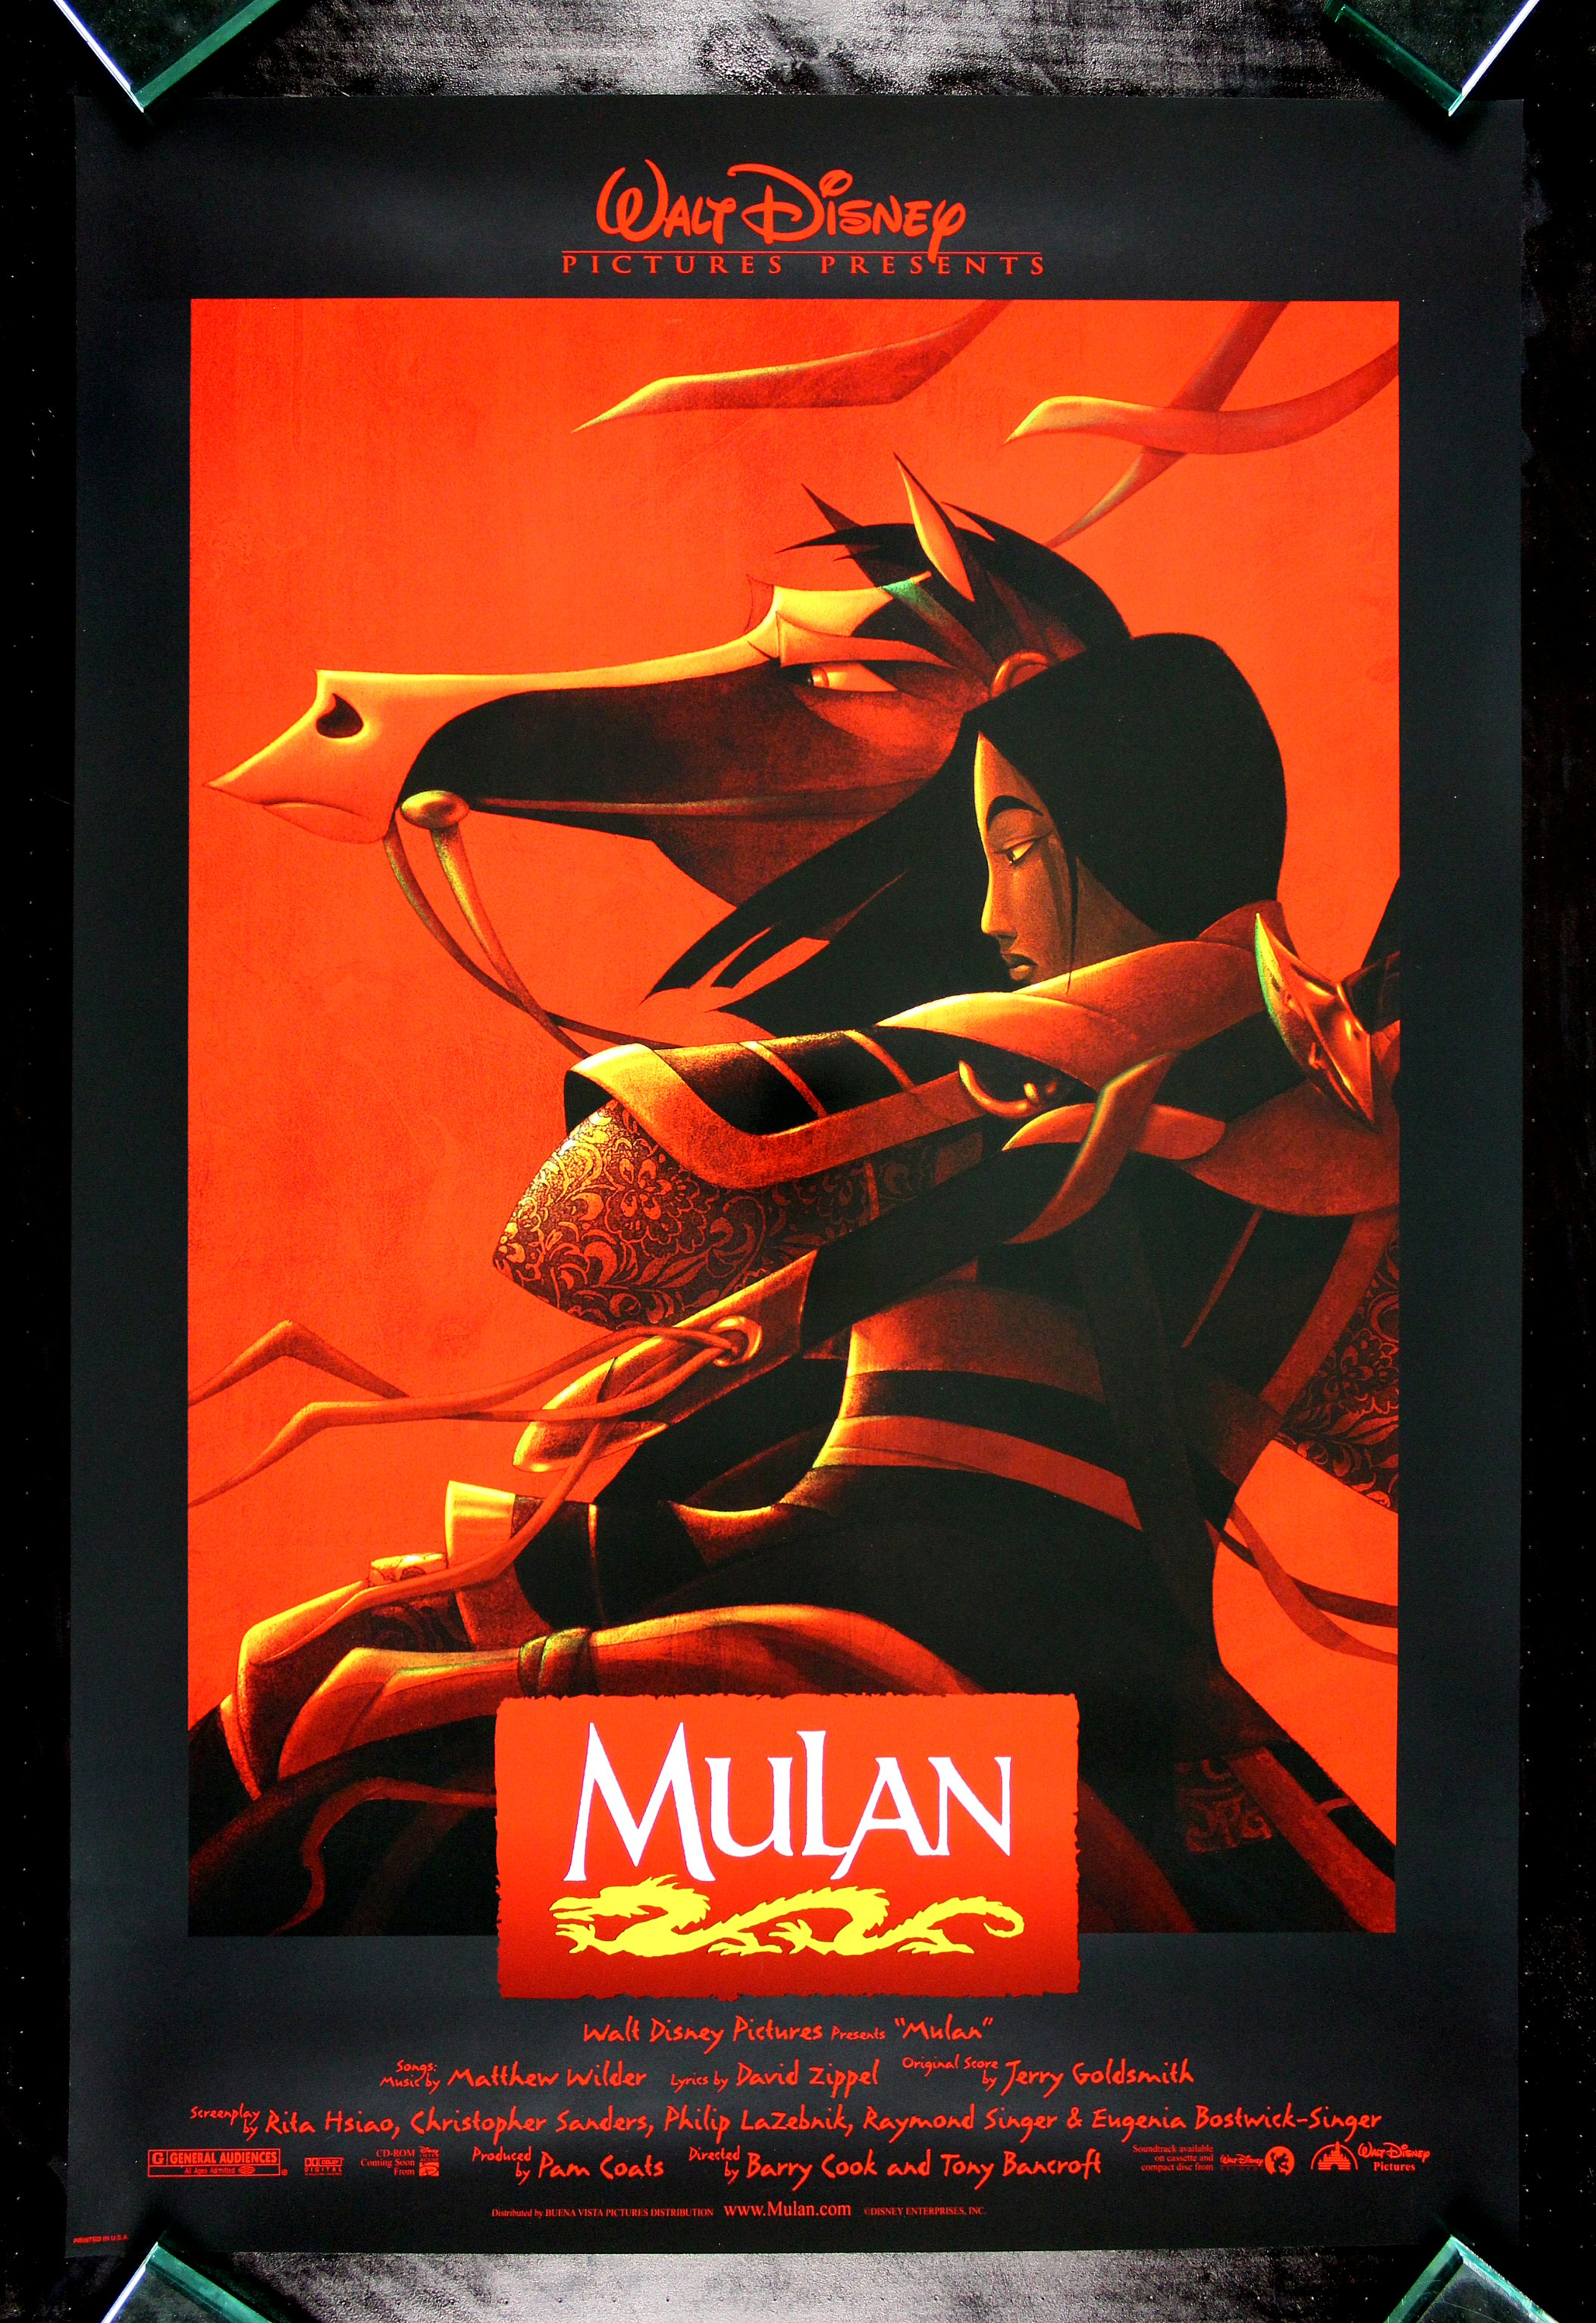 MULAN * CineMasterpieces DISNEY ORIGINAL MOVIE POSTER DS ...